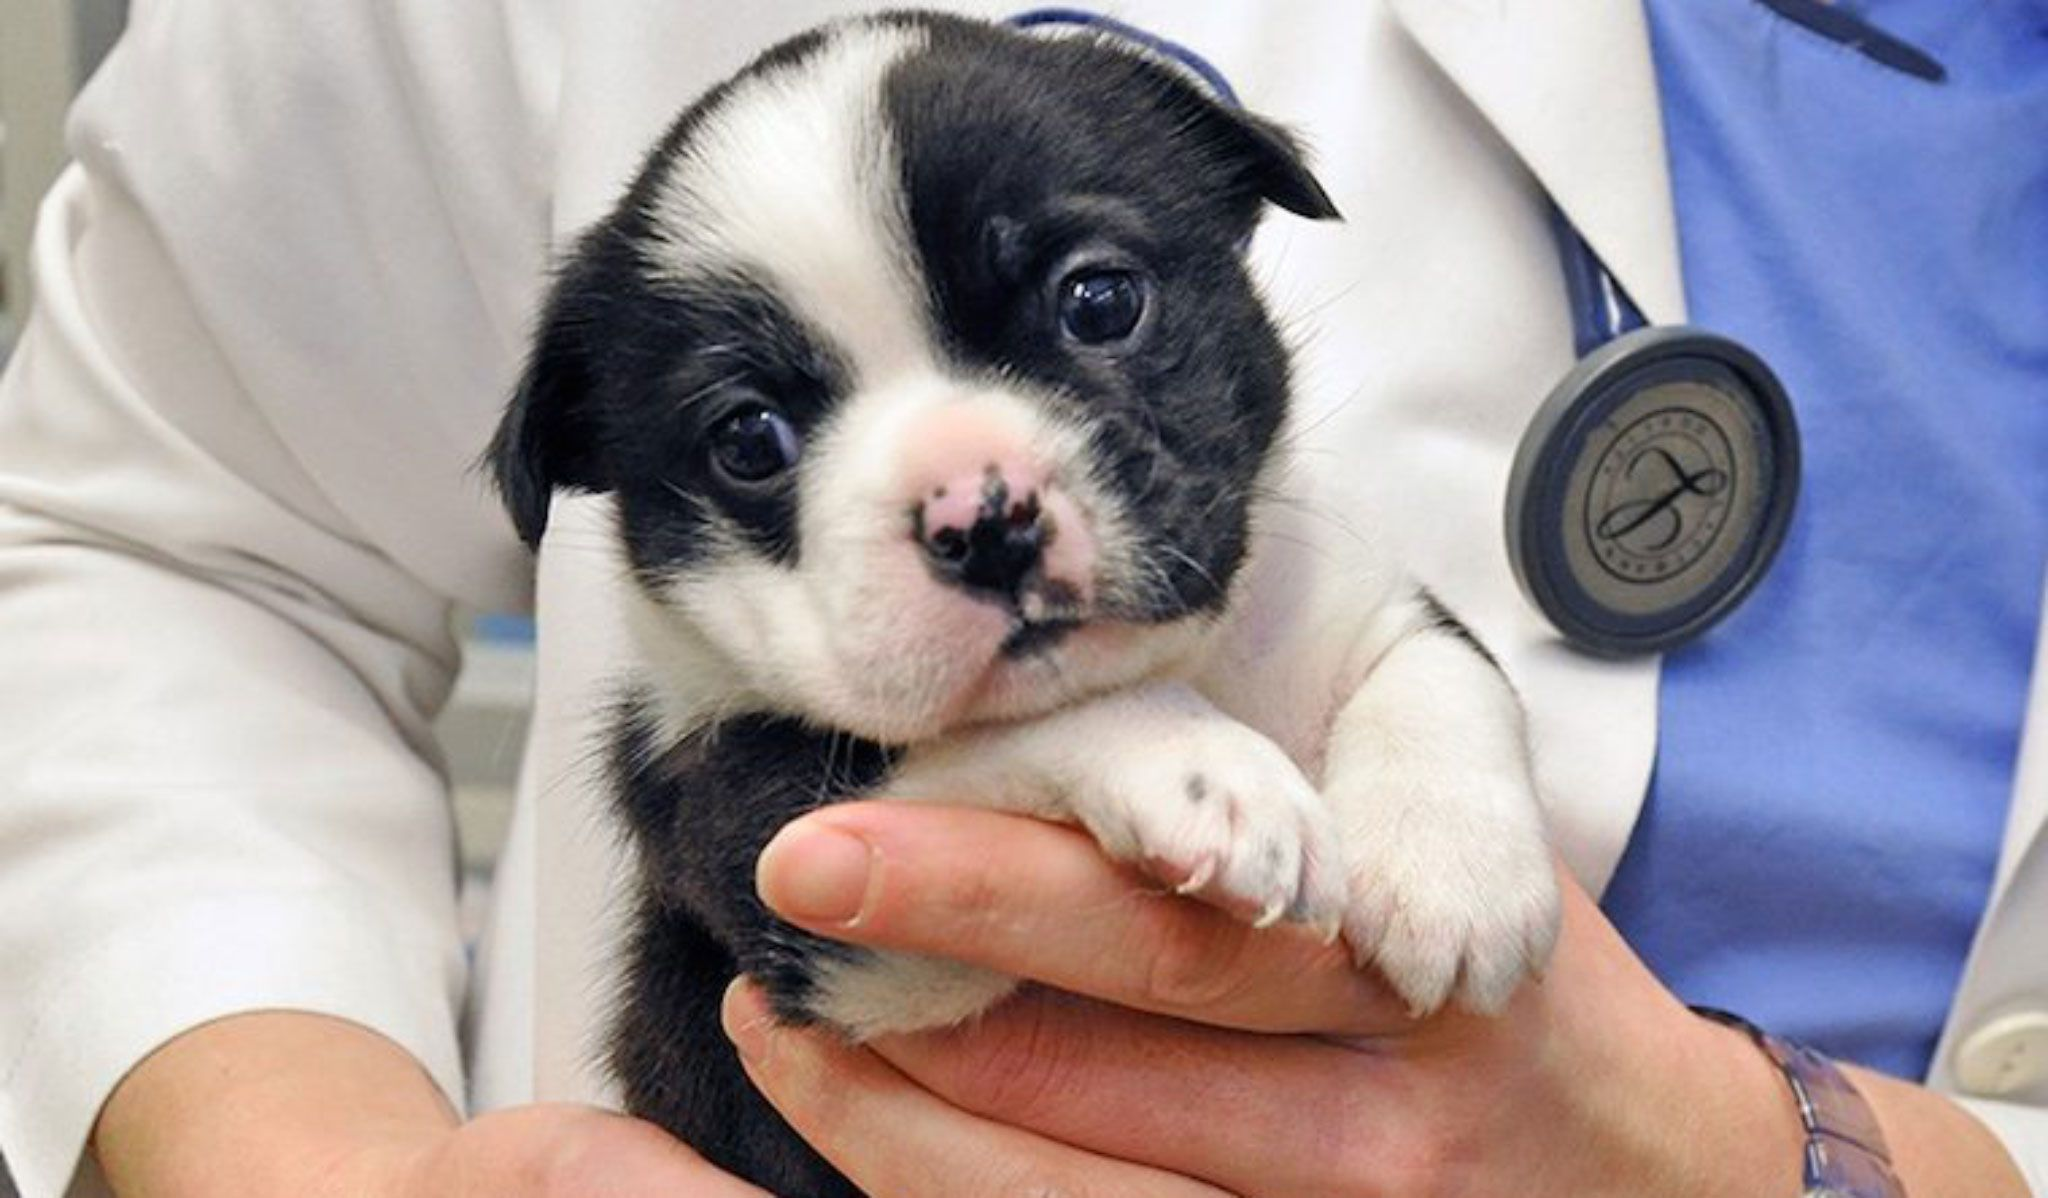 These Incredible Puppy Rescue Stories Will Make You Smile Tiny Puppies Rescue Puppies Animal Hospital